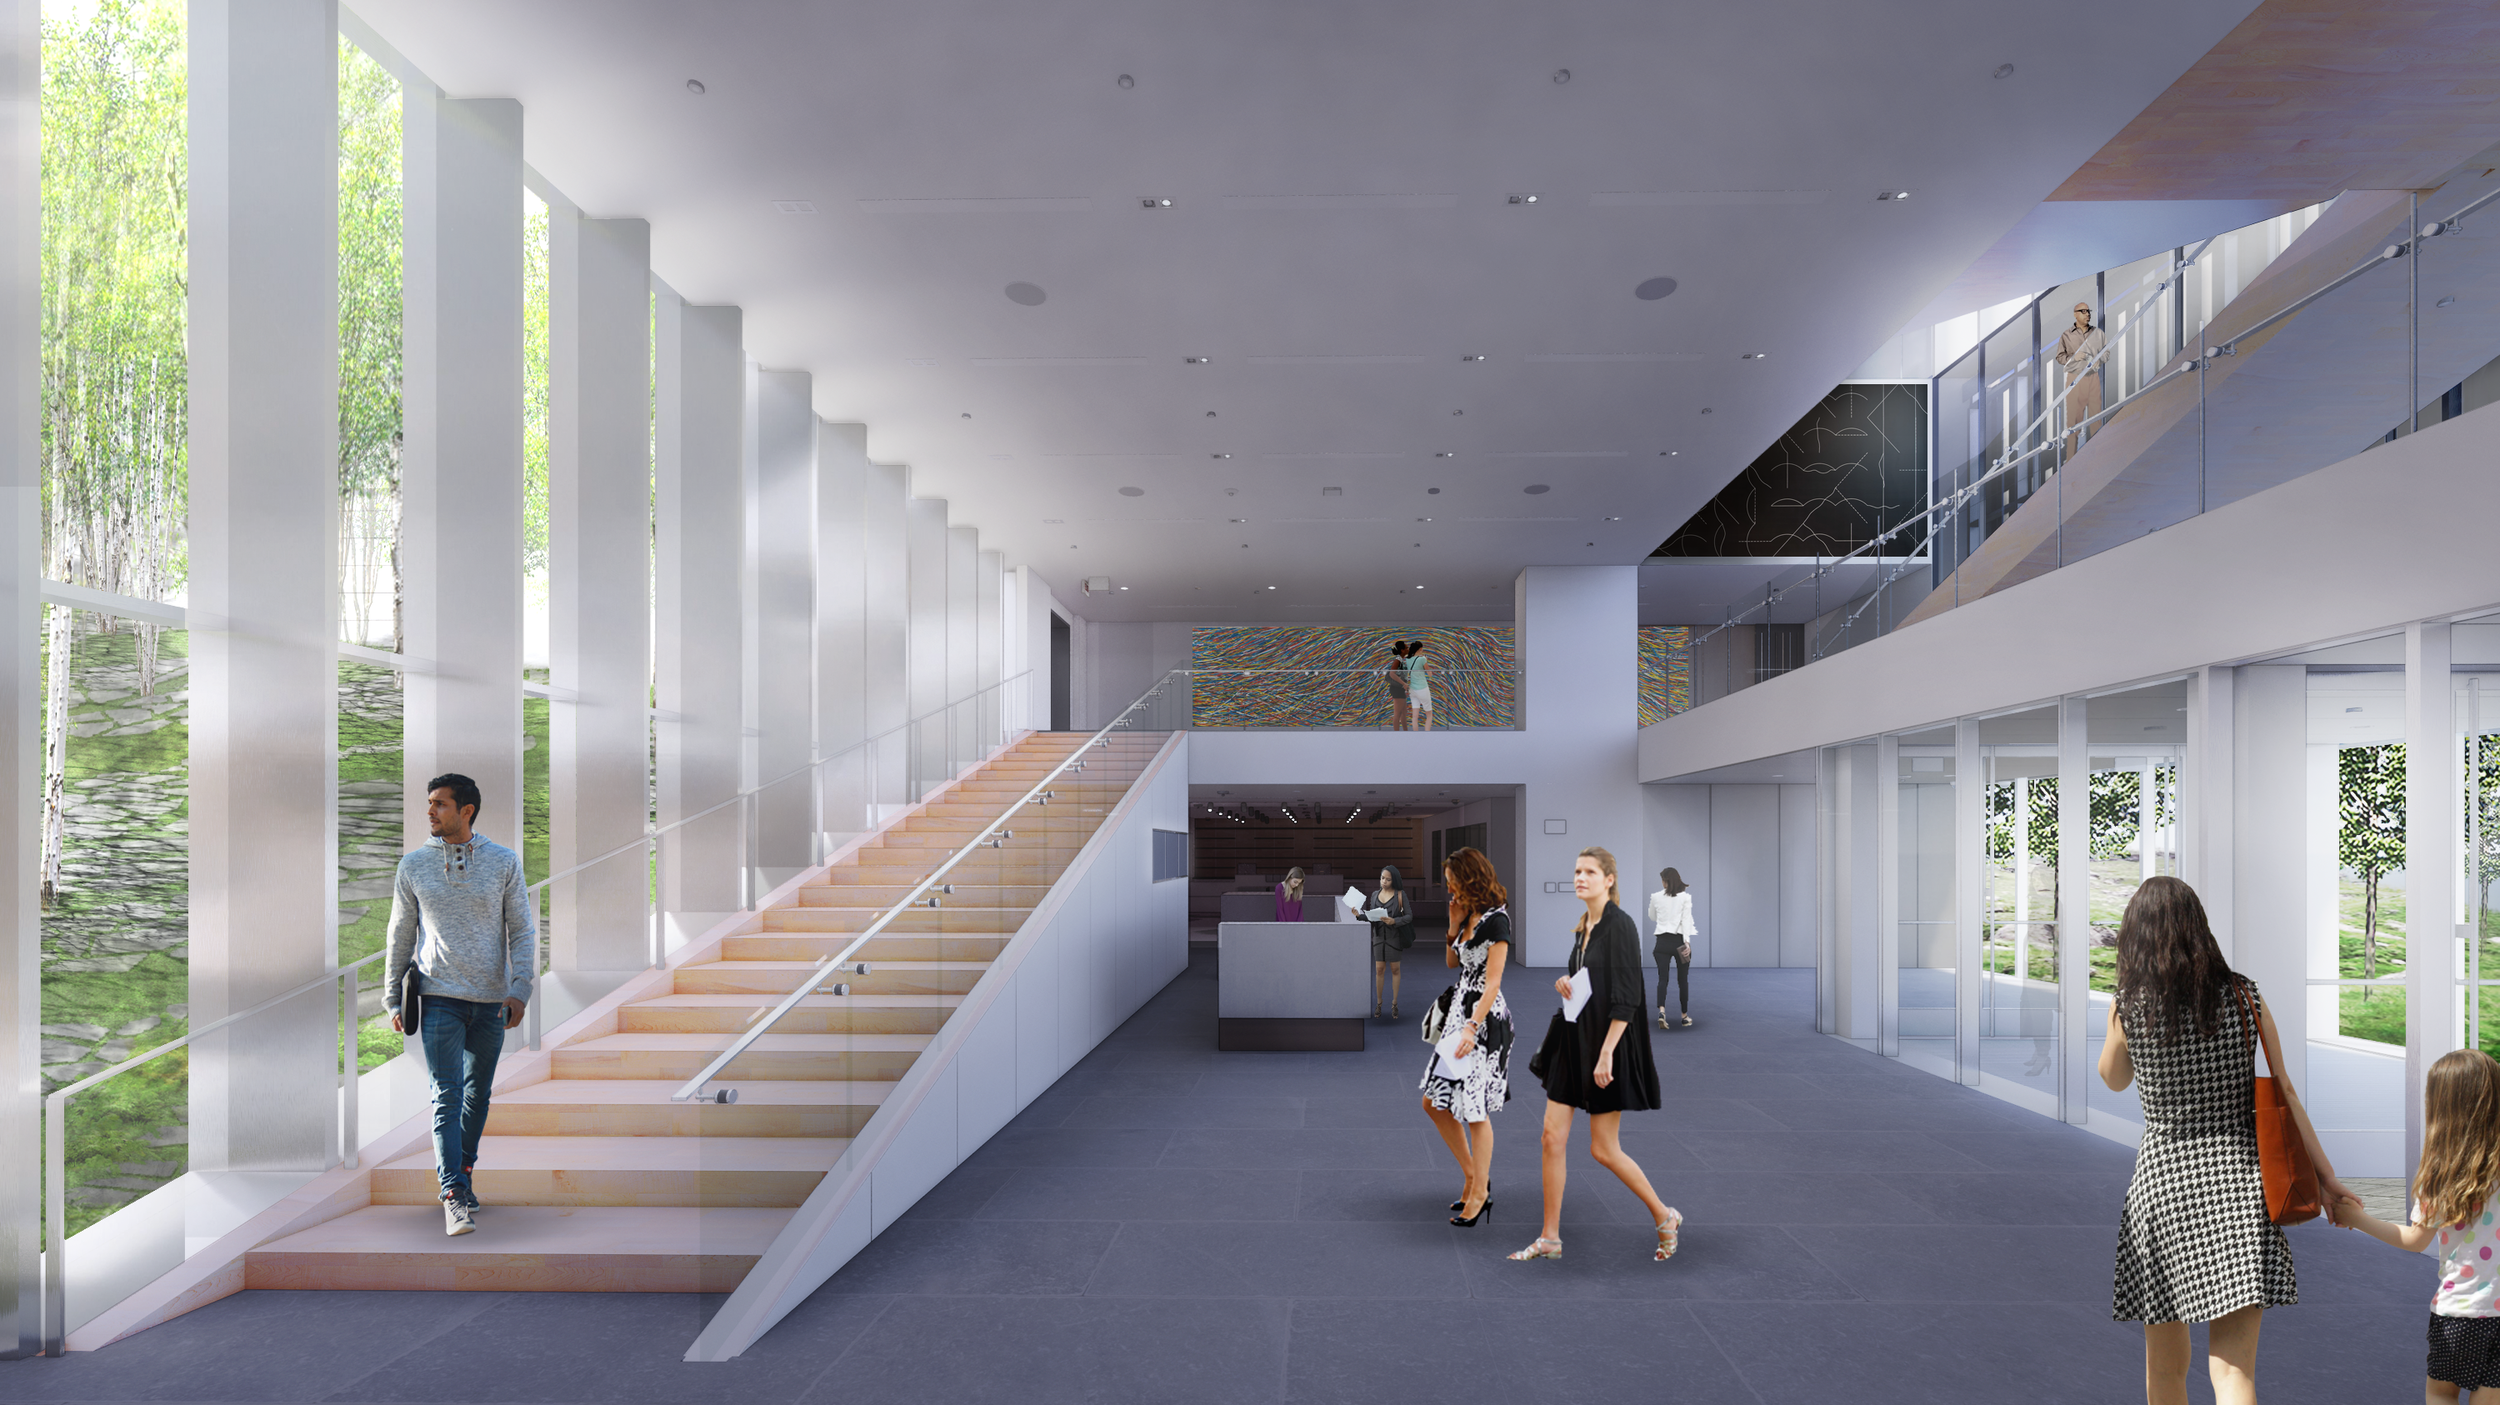 New Bruce Lobby and Grand Staircase with View into Light Court